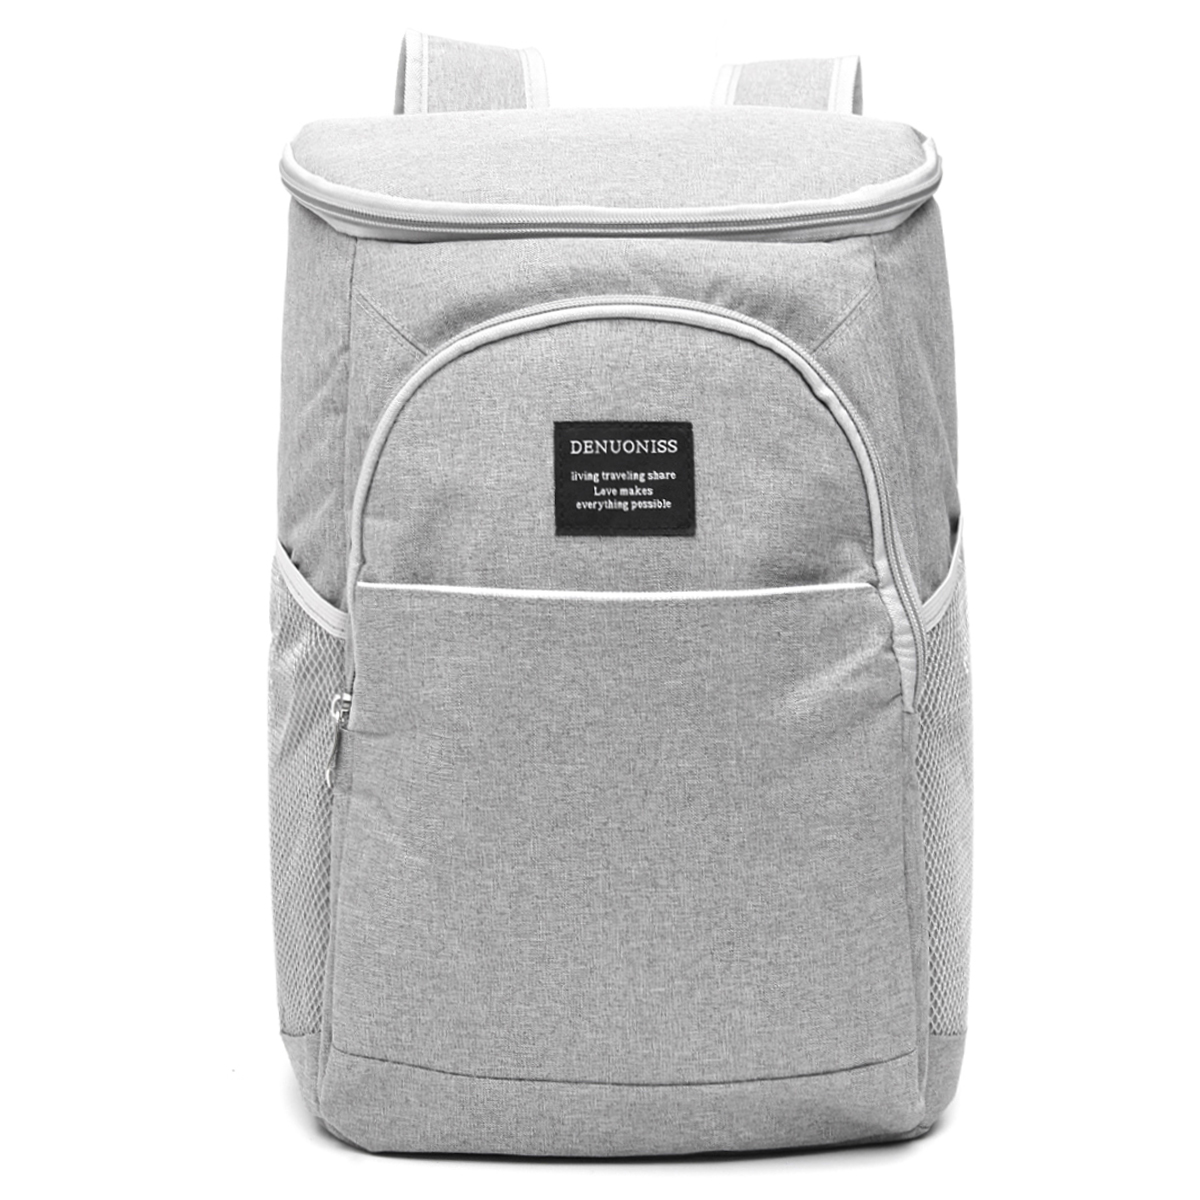 18L Insulated Cooling Backpack Camping Rucksack Ice Cooler Bag Freeze Picnic Grocery Bag